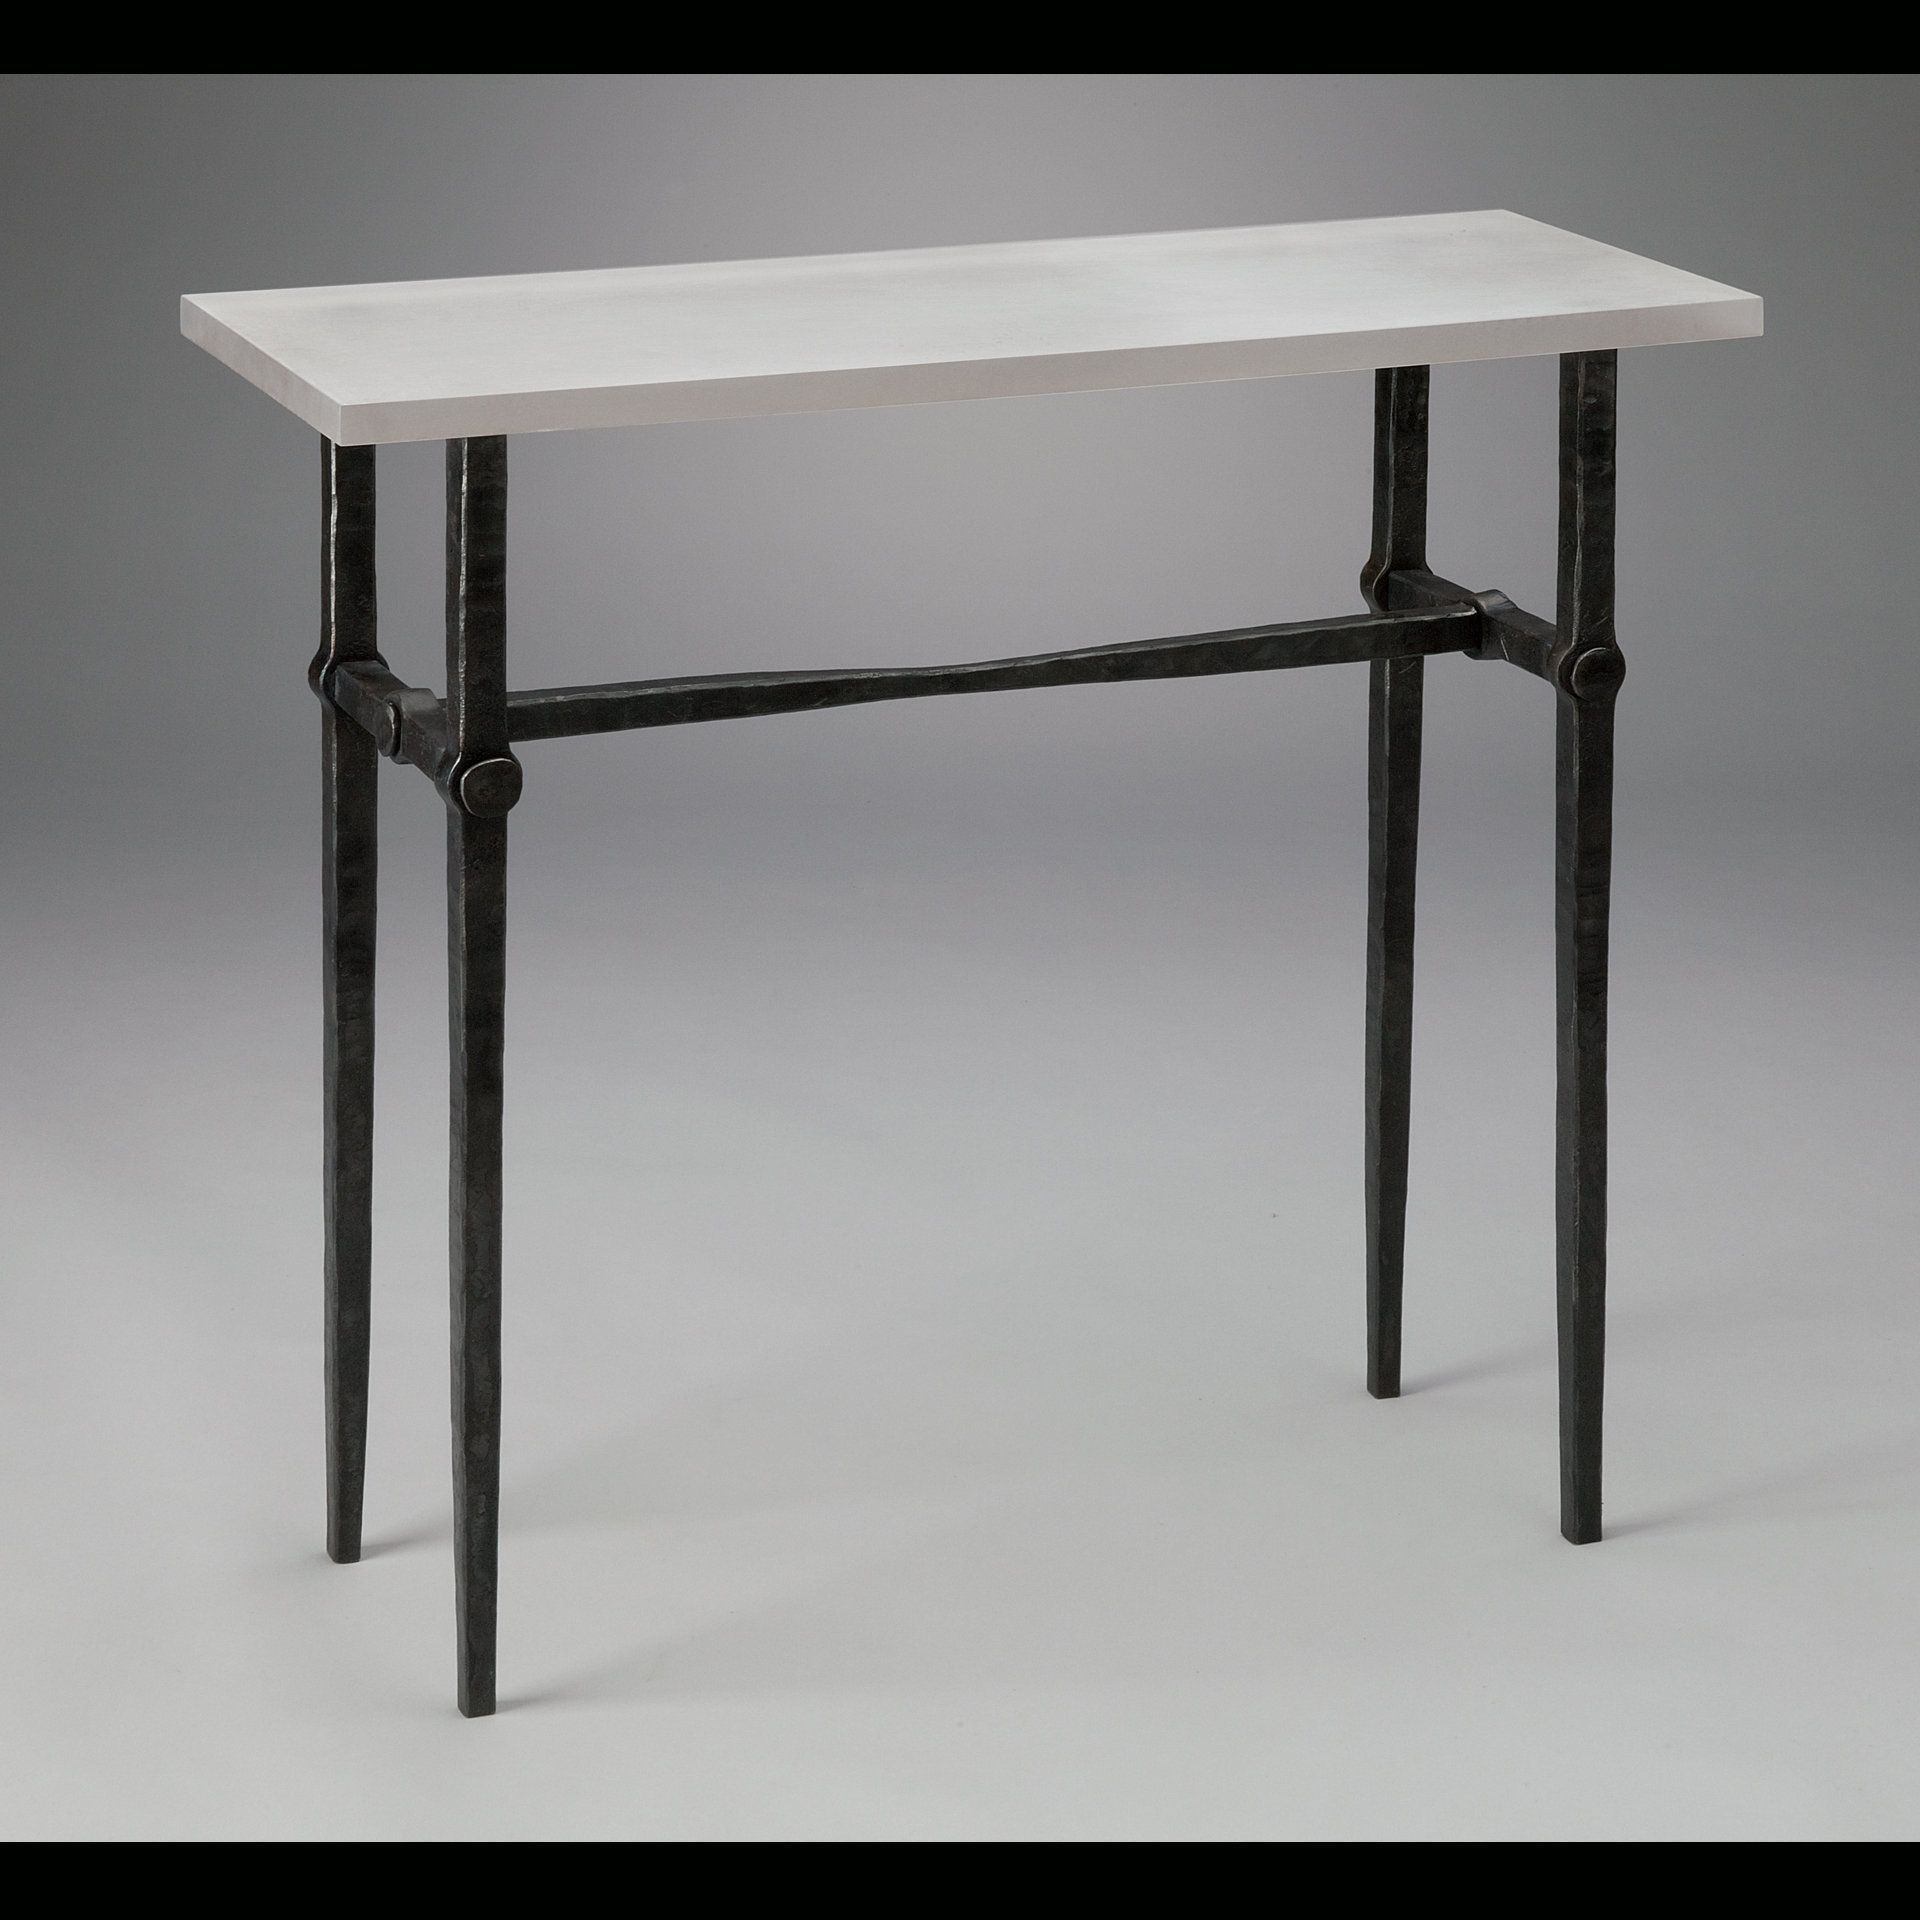 Pinjulia Forbes On Patio Ideas   Table, Console Table, Narrow In Parsons Walnut Top & Dark Steel Base 48X16 Console Tables (Photo 4 of 30)